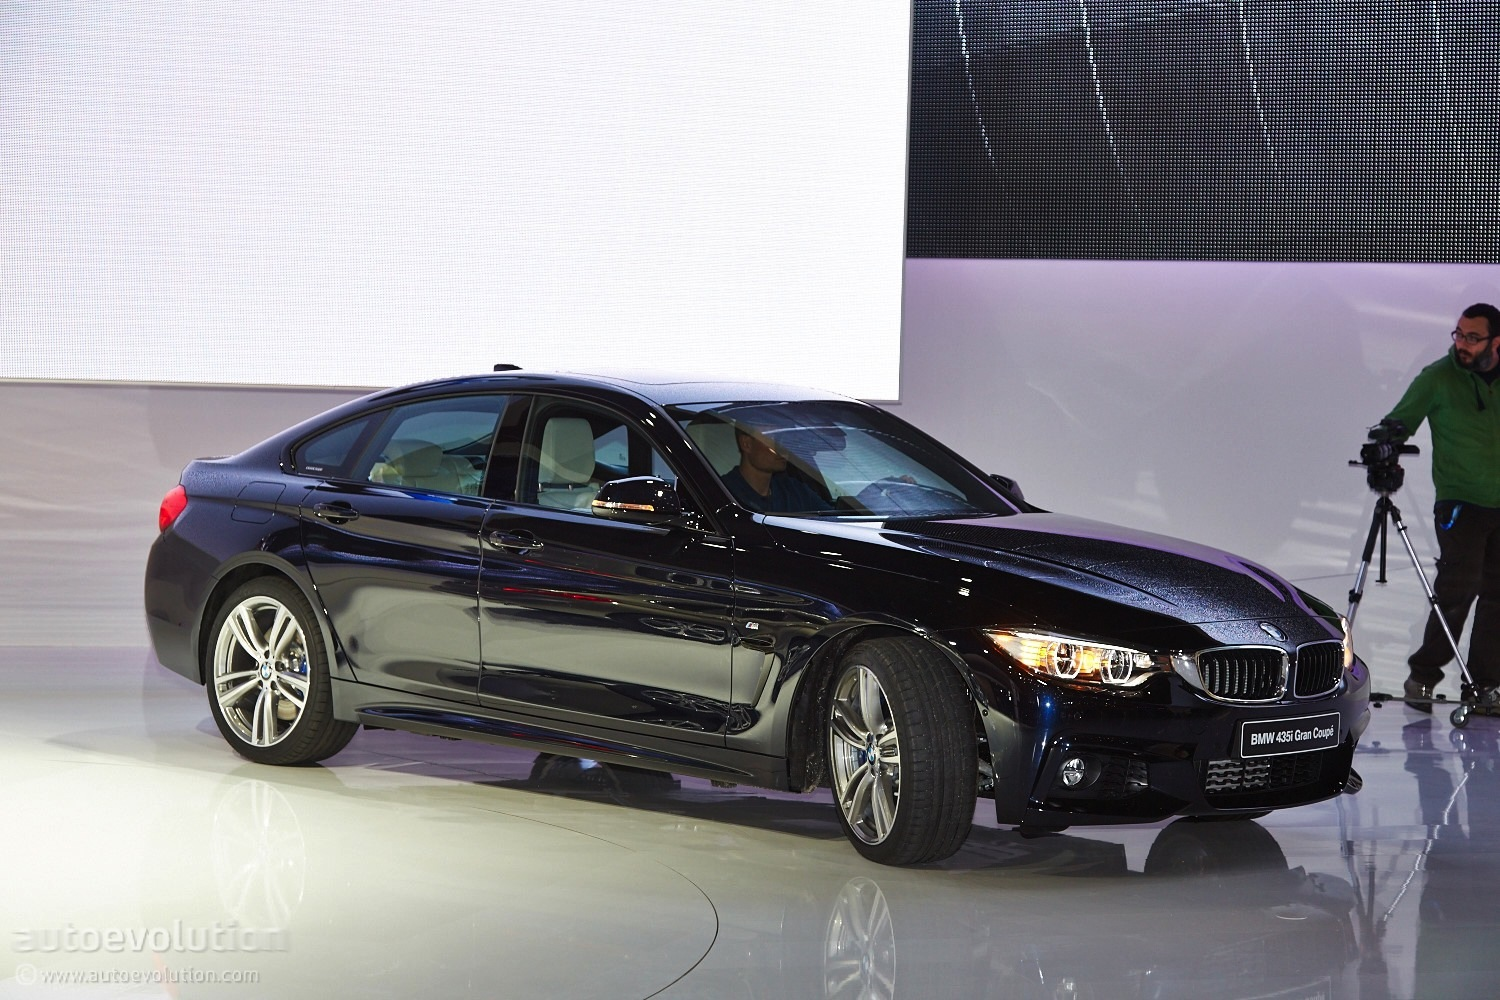 Coolest Car In The World Wallpaper World Debut Bmw 4 Series Gran Coupe Unveiled In Geneva